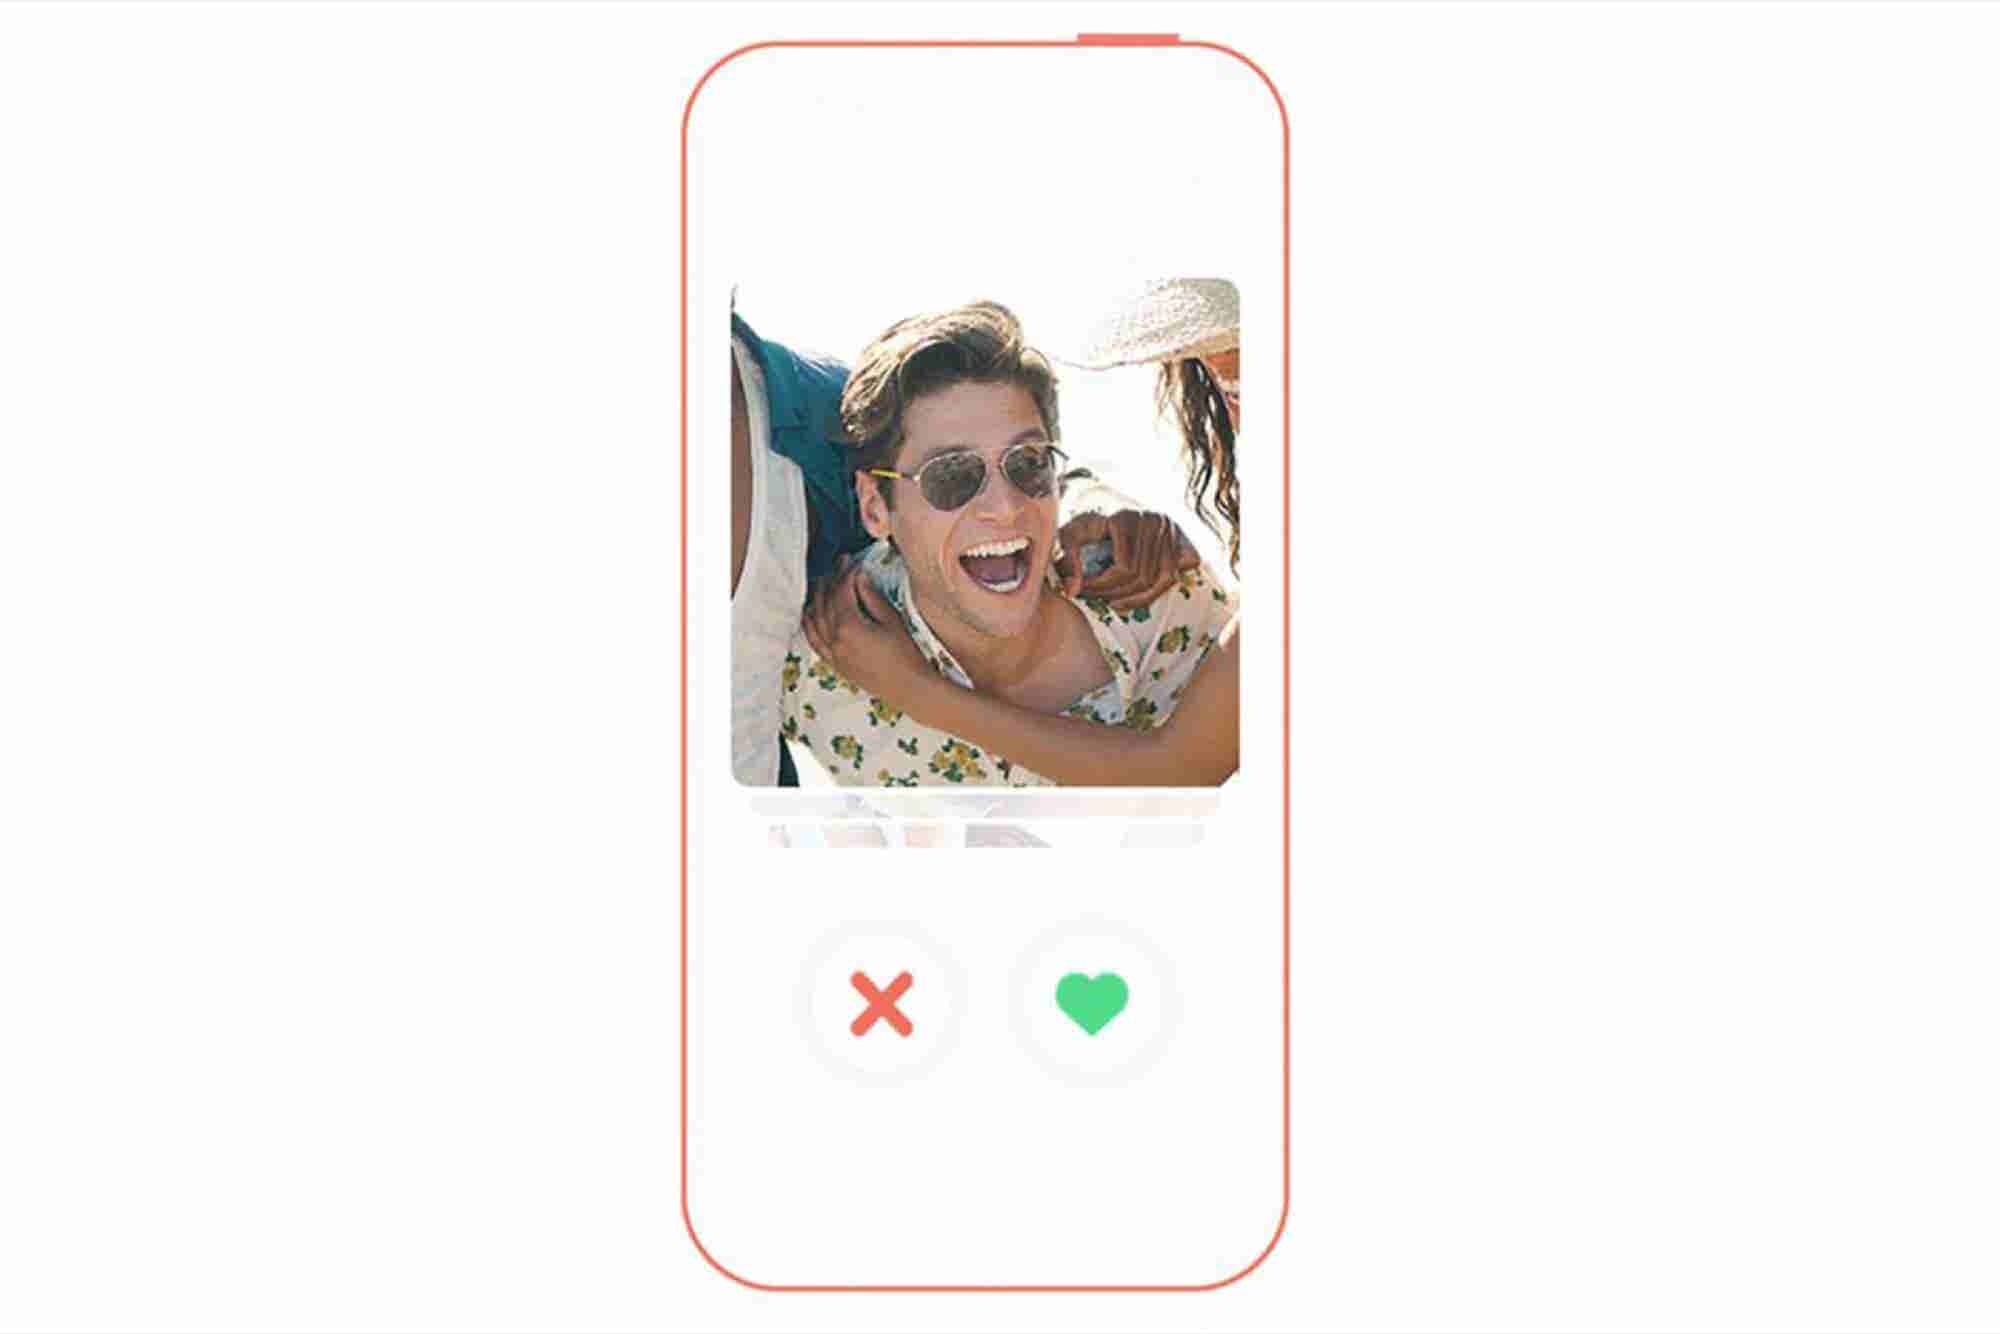 Regret Swiping Left on Tinder? Soon You Can Pay to Undo It.